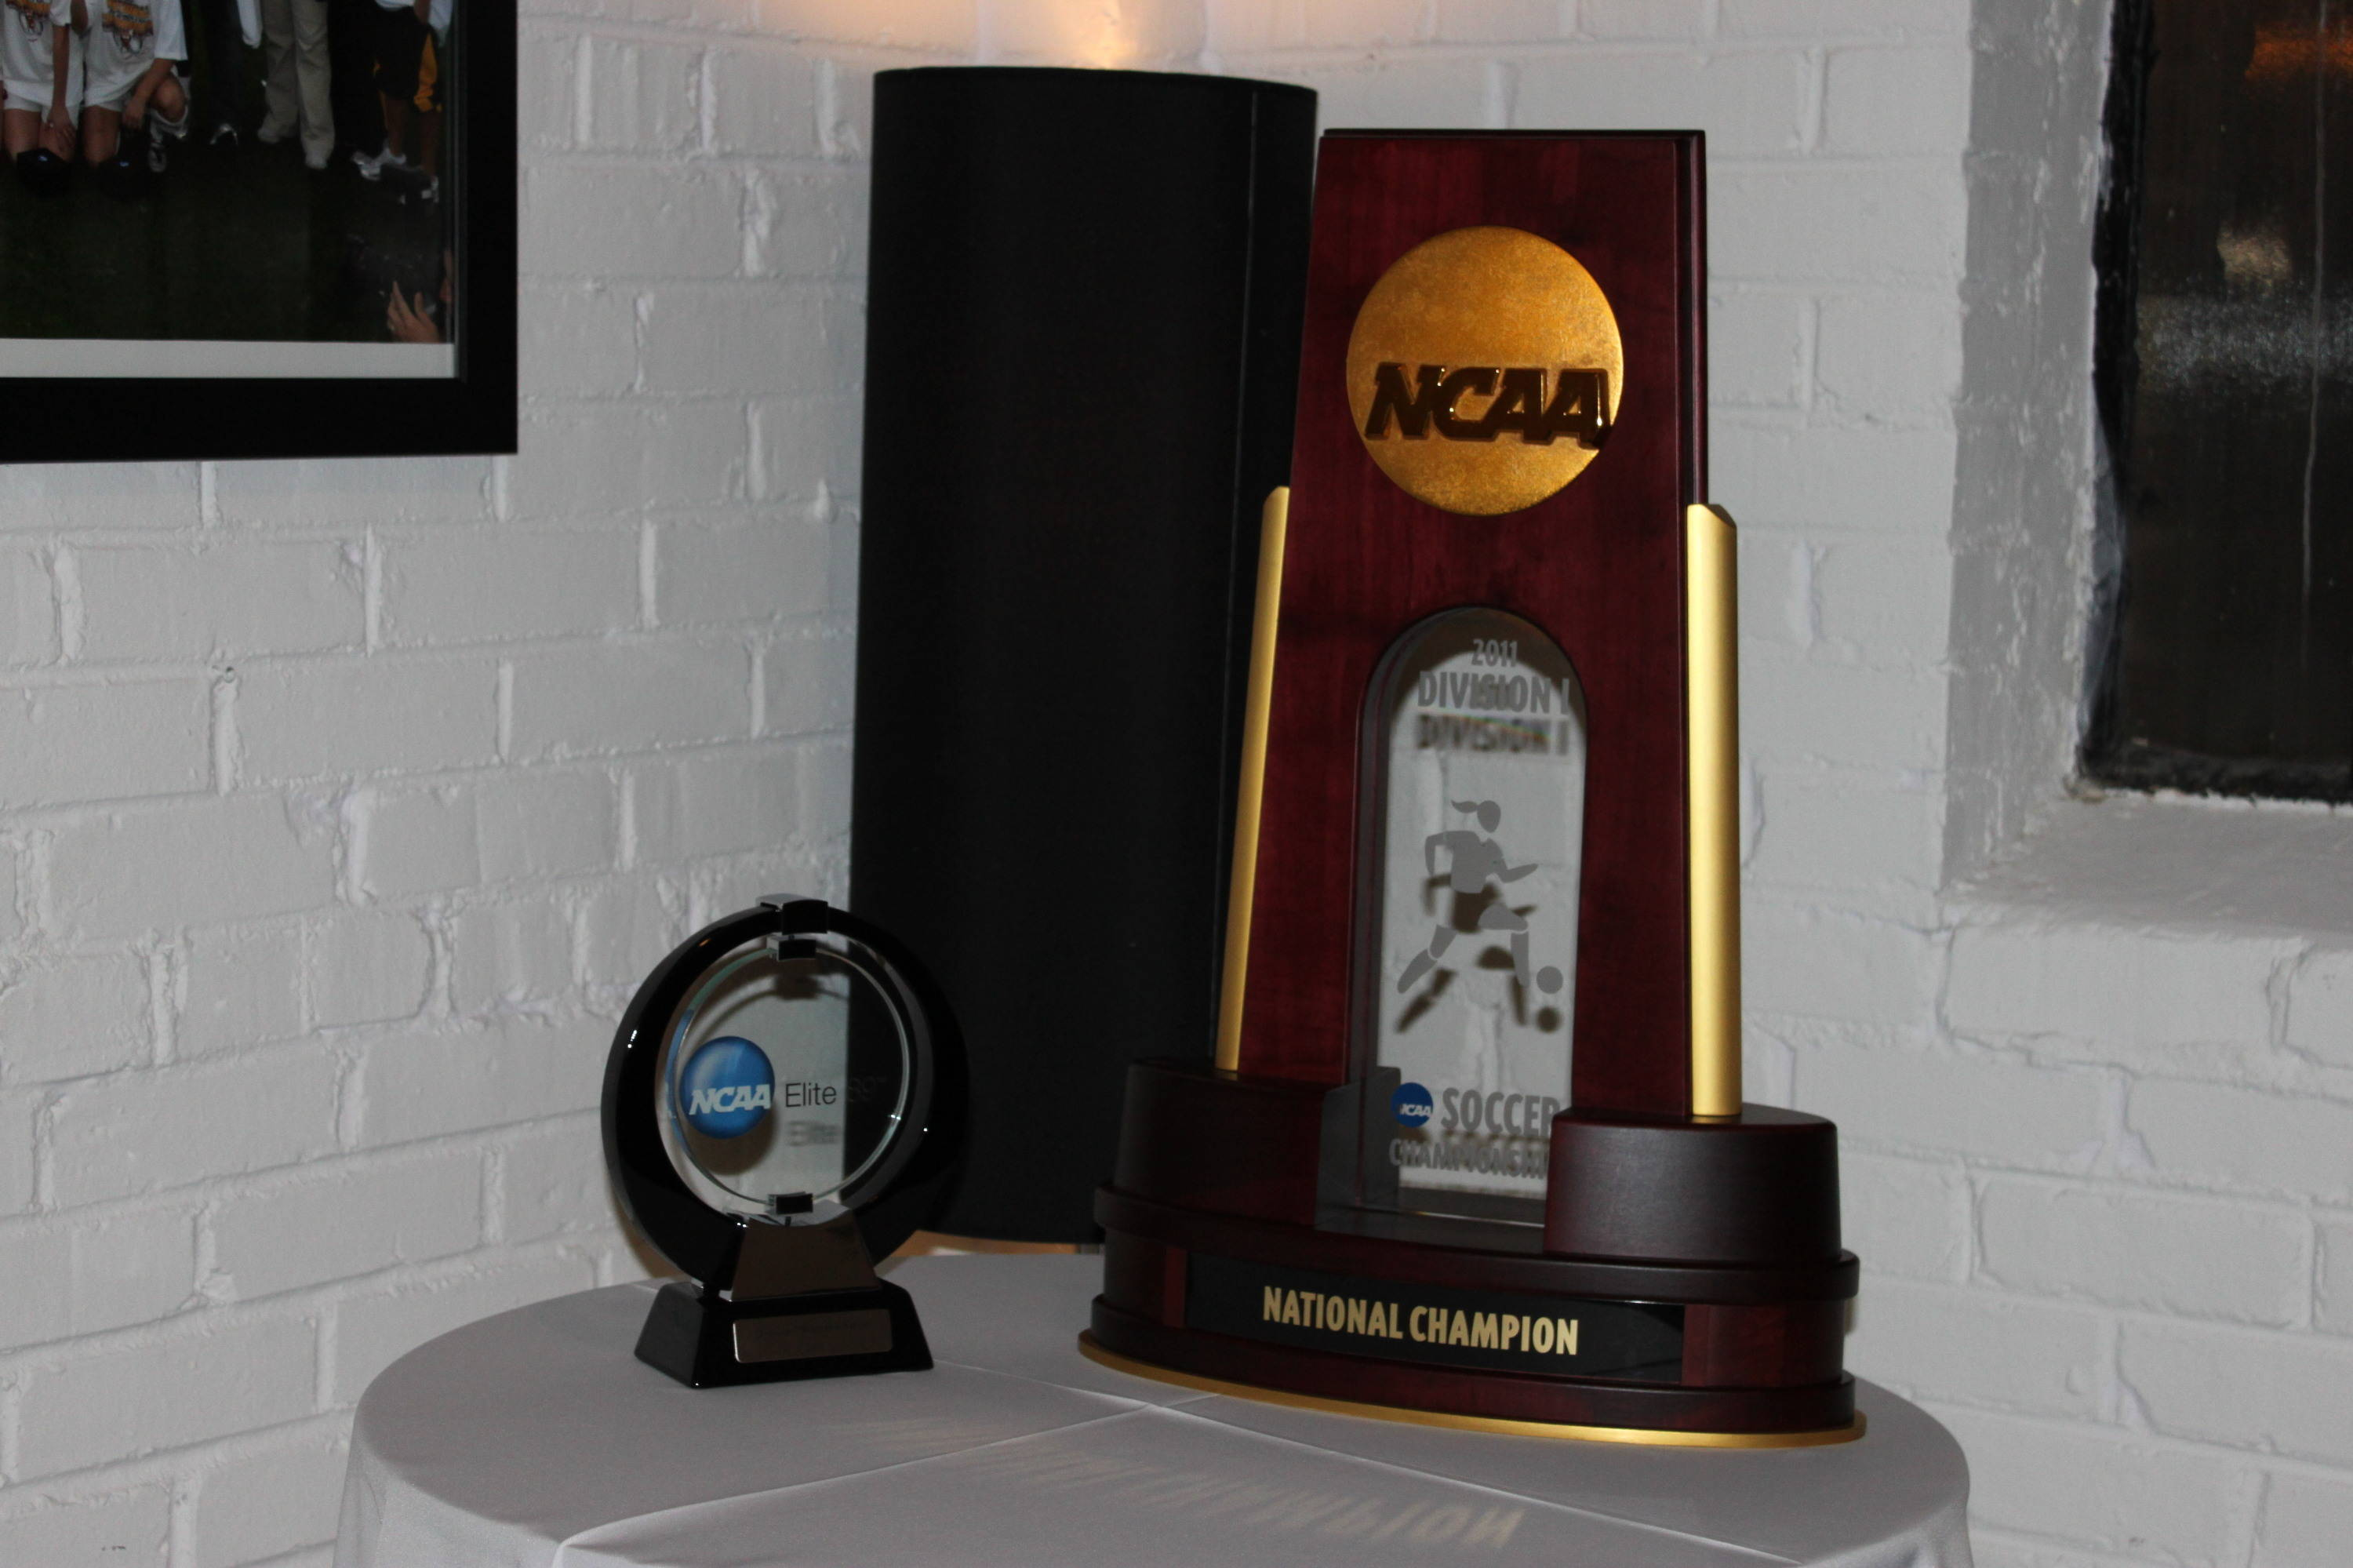 The Elite 89 award and the National Championship trophy